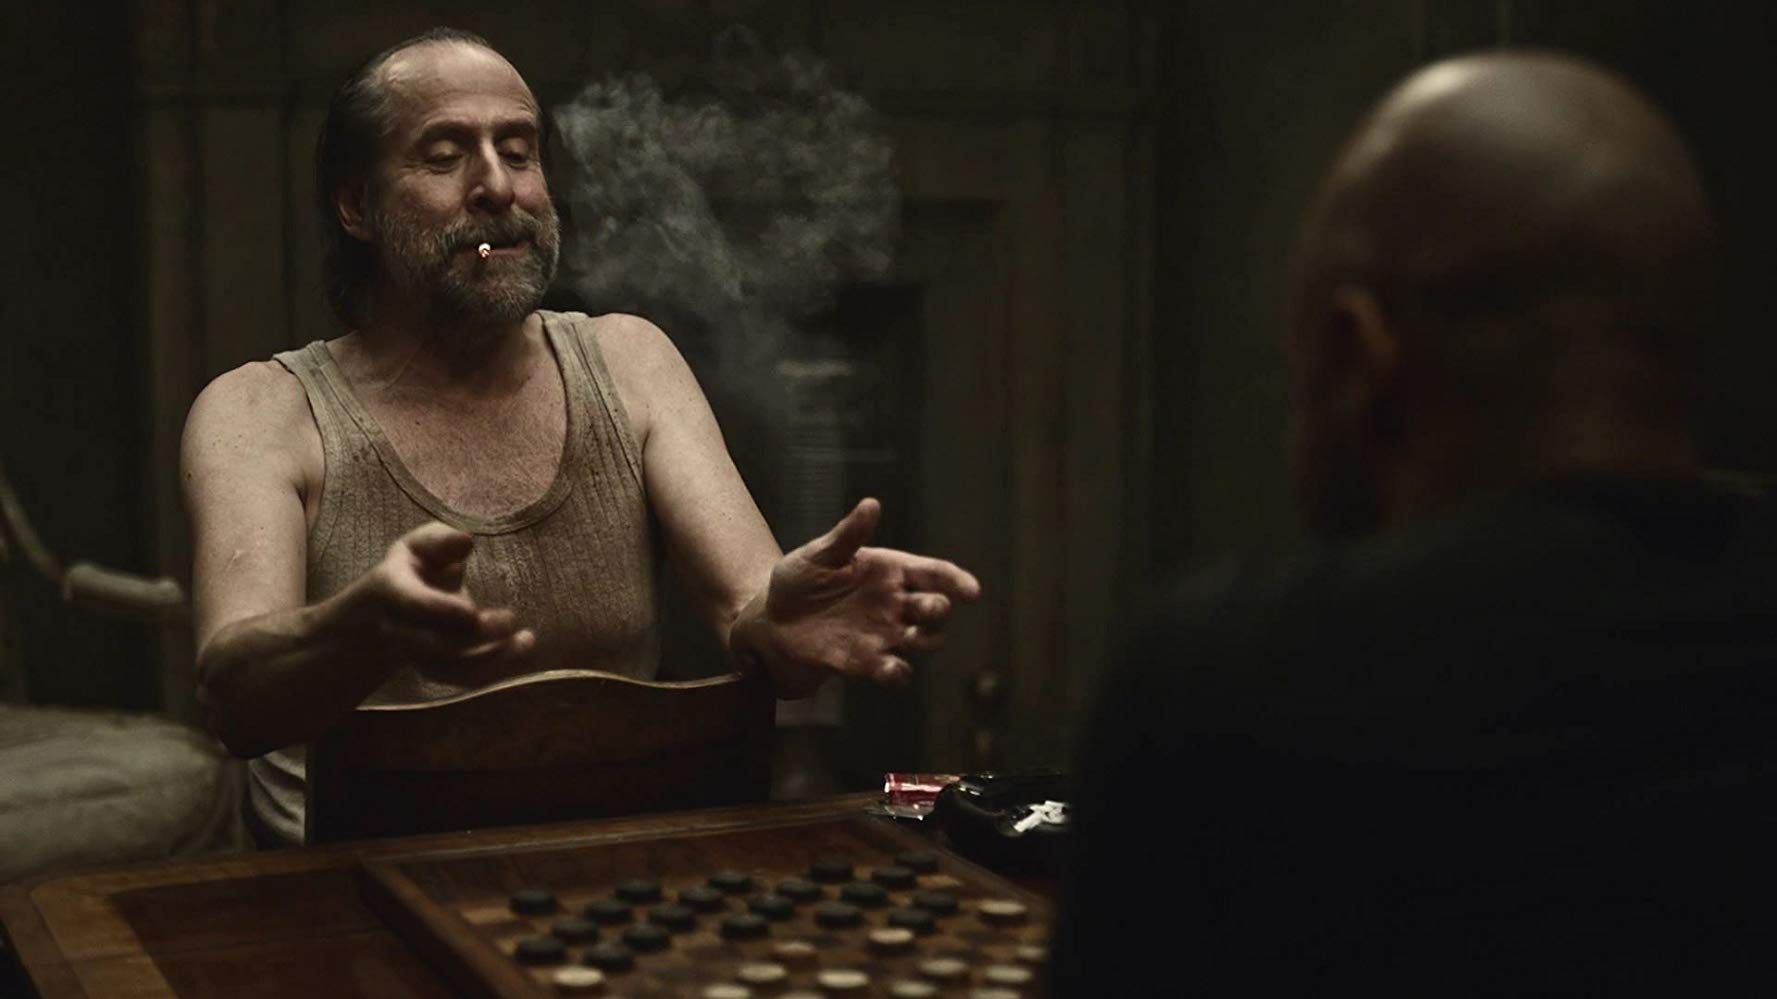 Czernobog playing a game of checkers with Shadow on 'American Gods'. Source: IMDB